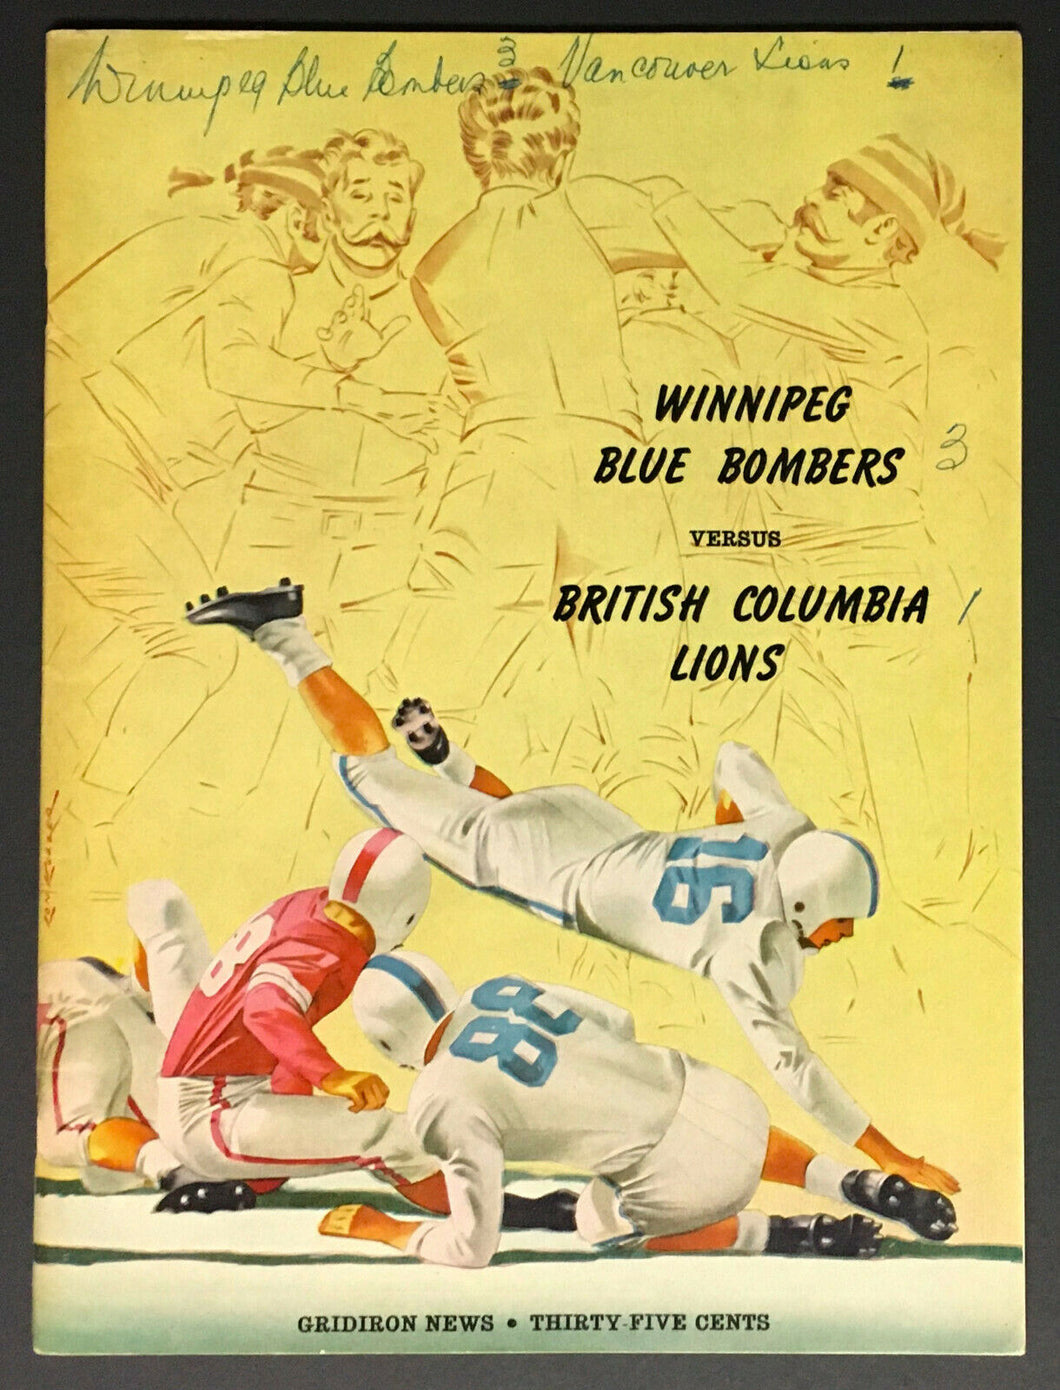 1956 CFL Football Program Winnipeg Blue Bombers vs British Columbia Lions VTG